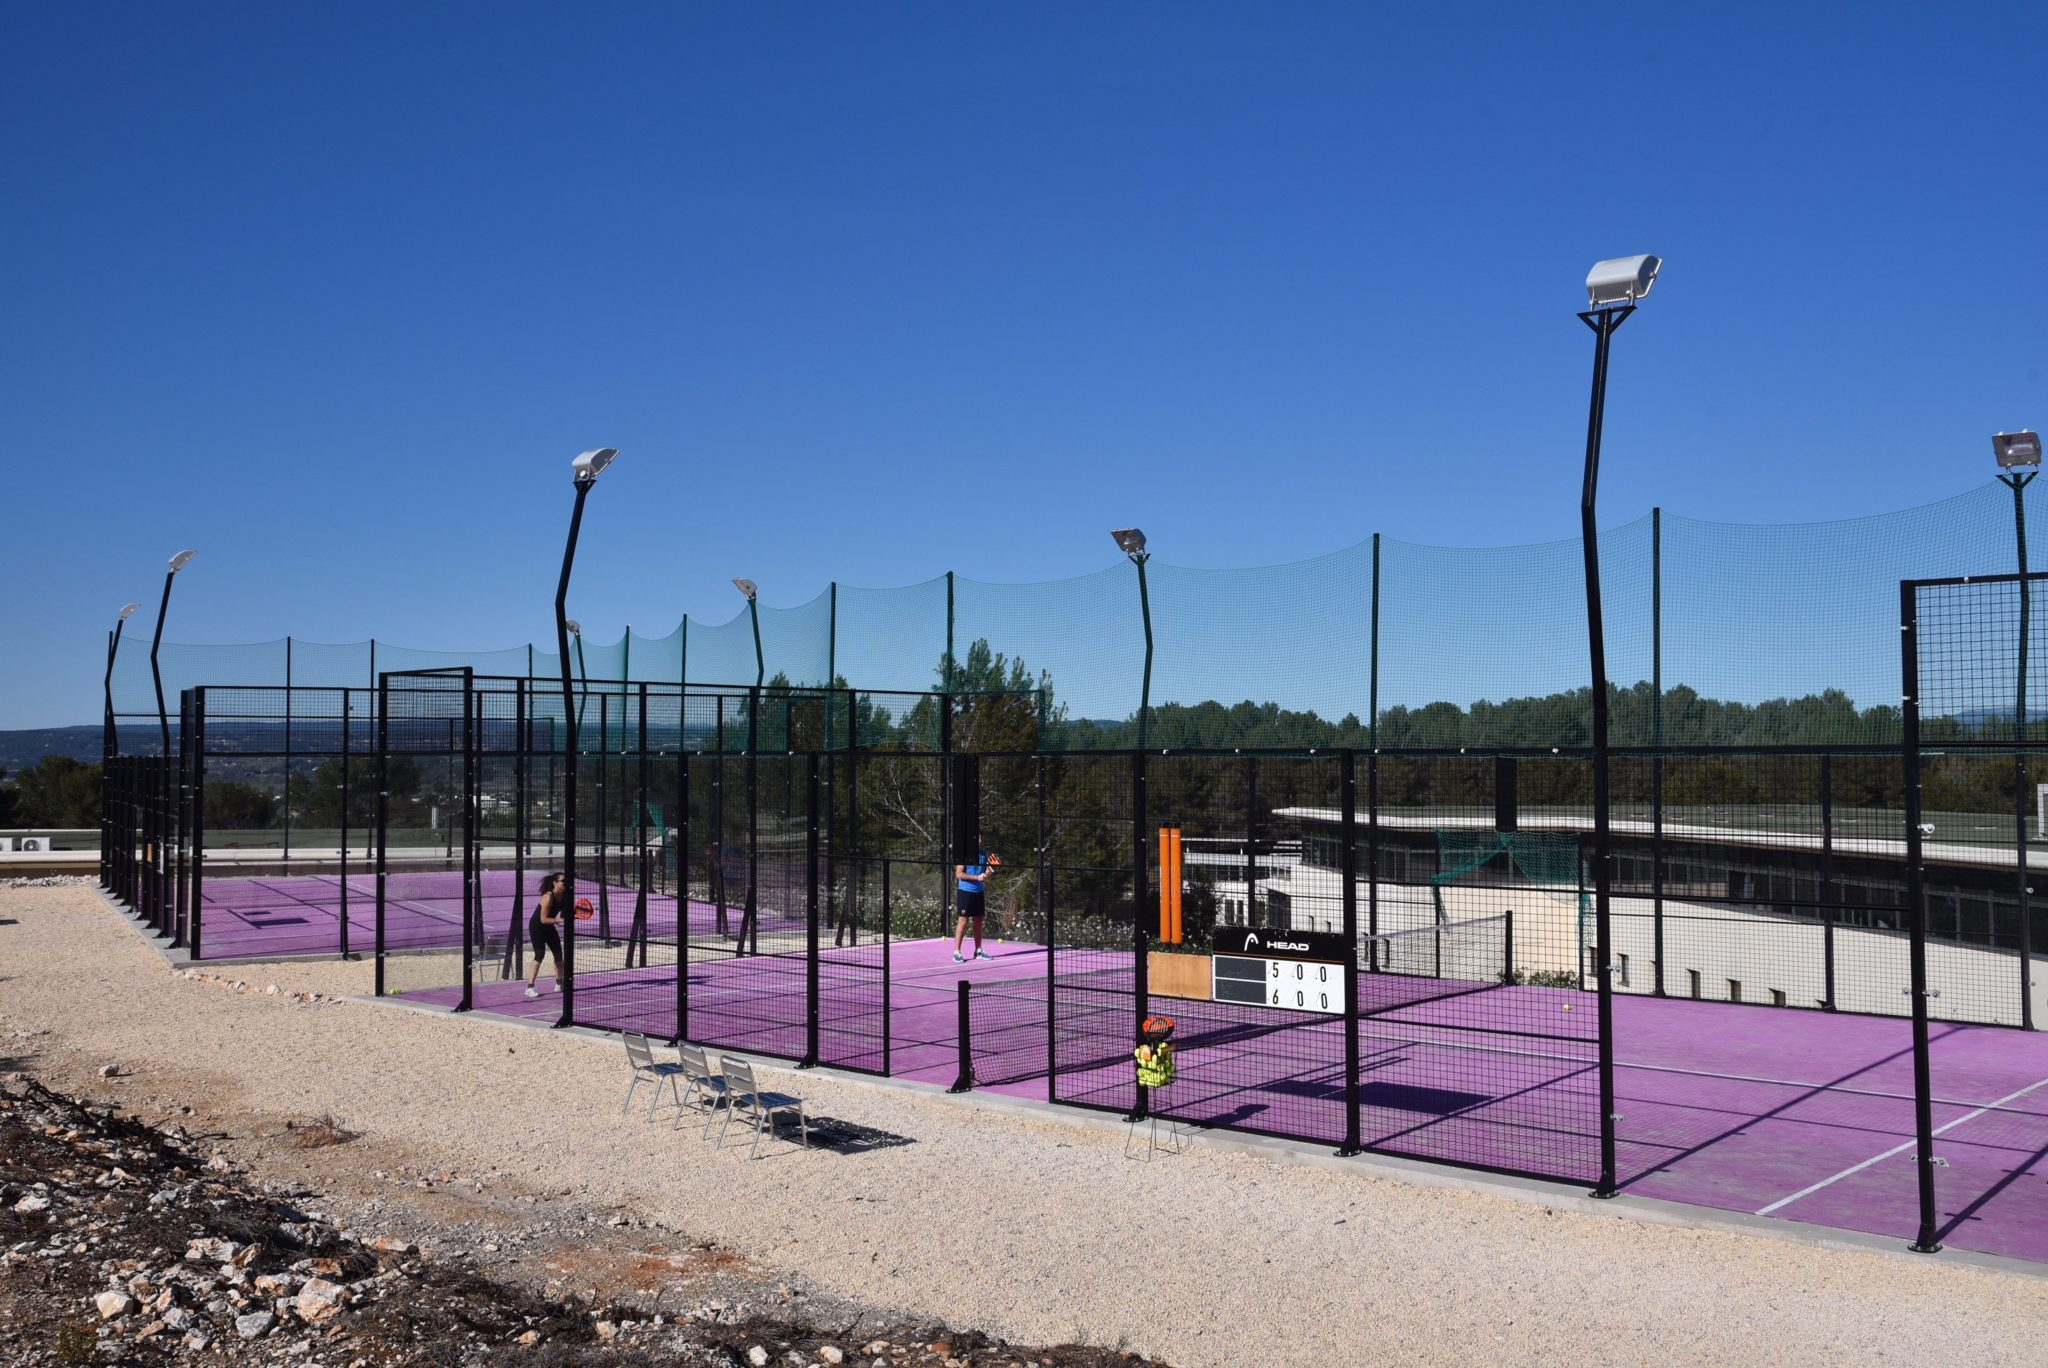 WORK AND PADEL, QUAND SPORT ET TRAVAIL FONT BON MENAGE